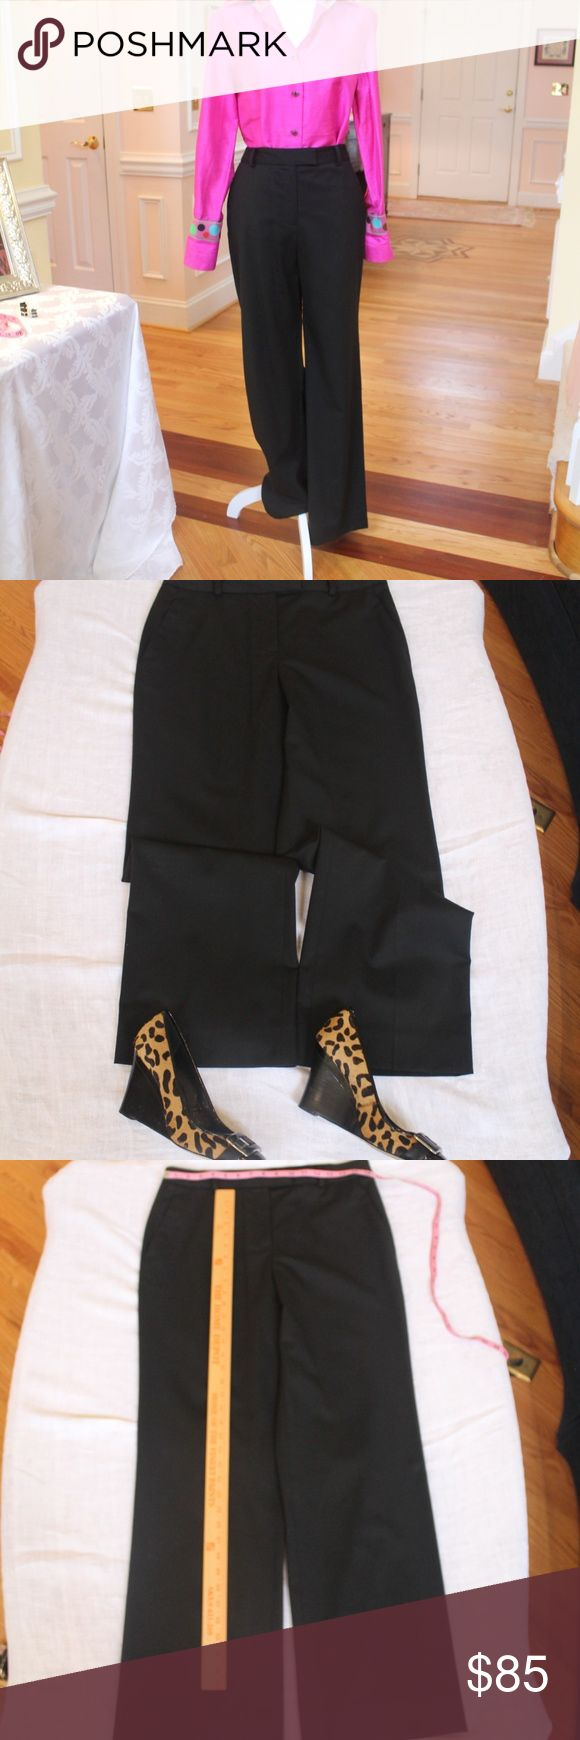 """PRICE WILL DROP SO WATCH THESE Brooks Bros pants WHAT IF... You liked this listing, but didn't """"like"""" it? How would you know when the price is dropped? So, don't forget to """"like"""" it by clicking the HEART button. Then, when the price drops, you'll know. See other listings for Brooks Bros jacket, skirt, and Andrea Becker pink silk blouse.(It's gorgeous!)  SEE MY OTHER LISTINGS FOR SHOES, ACCESSORIES, and DRESSES. Not everything has been posted yet, so follow me as a seller. Brooks Brothers…"""